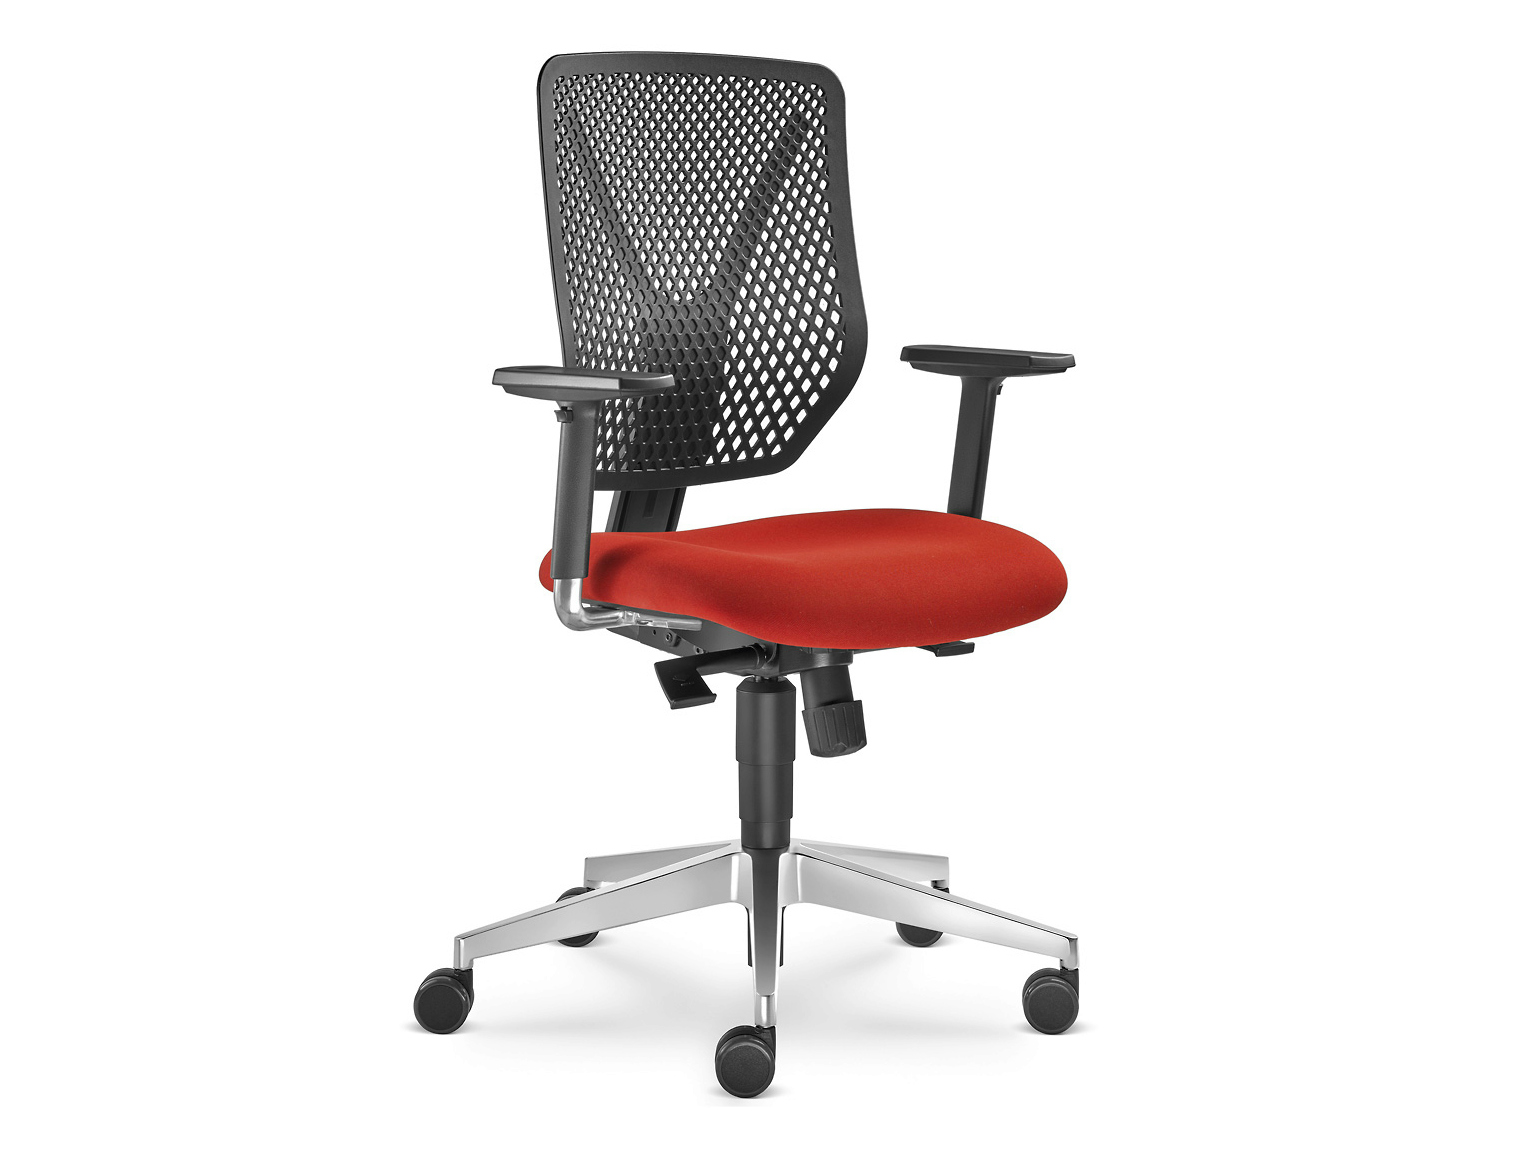 Height Adjustable Task Chair With 5 Spoke Base With Casters WHY 320 SY By LD